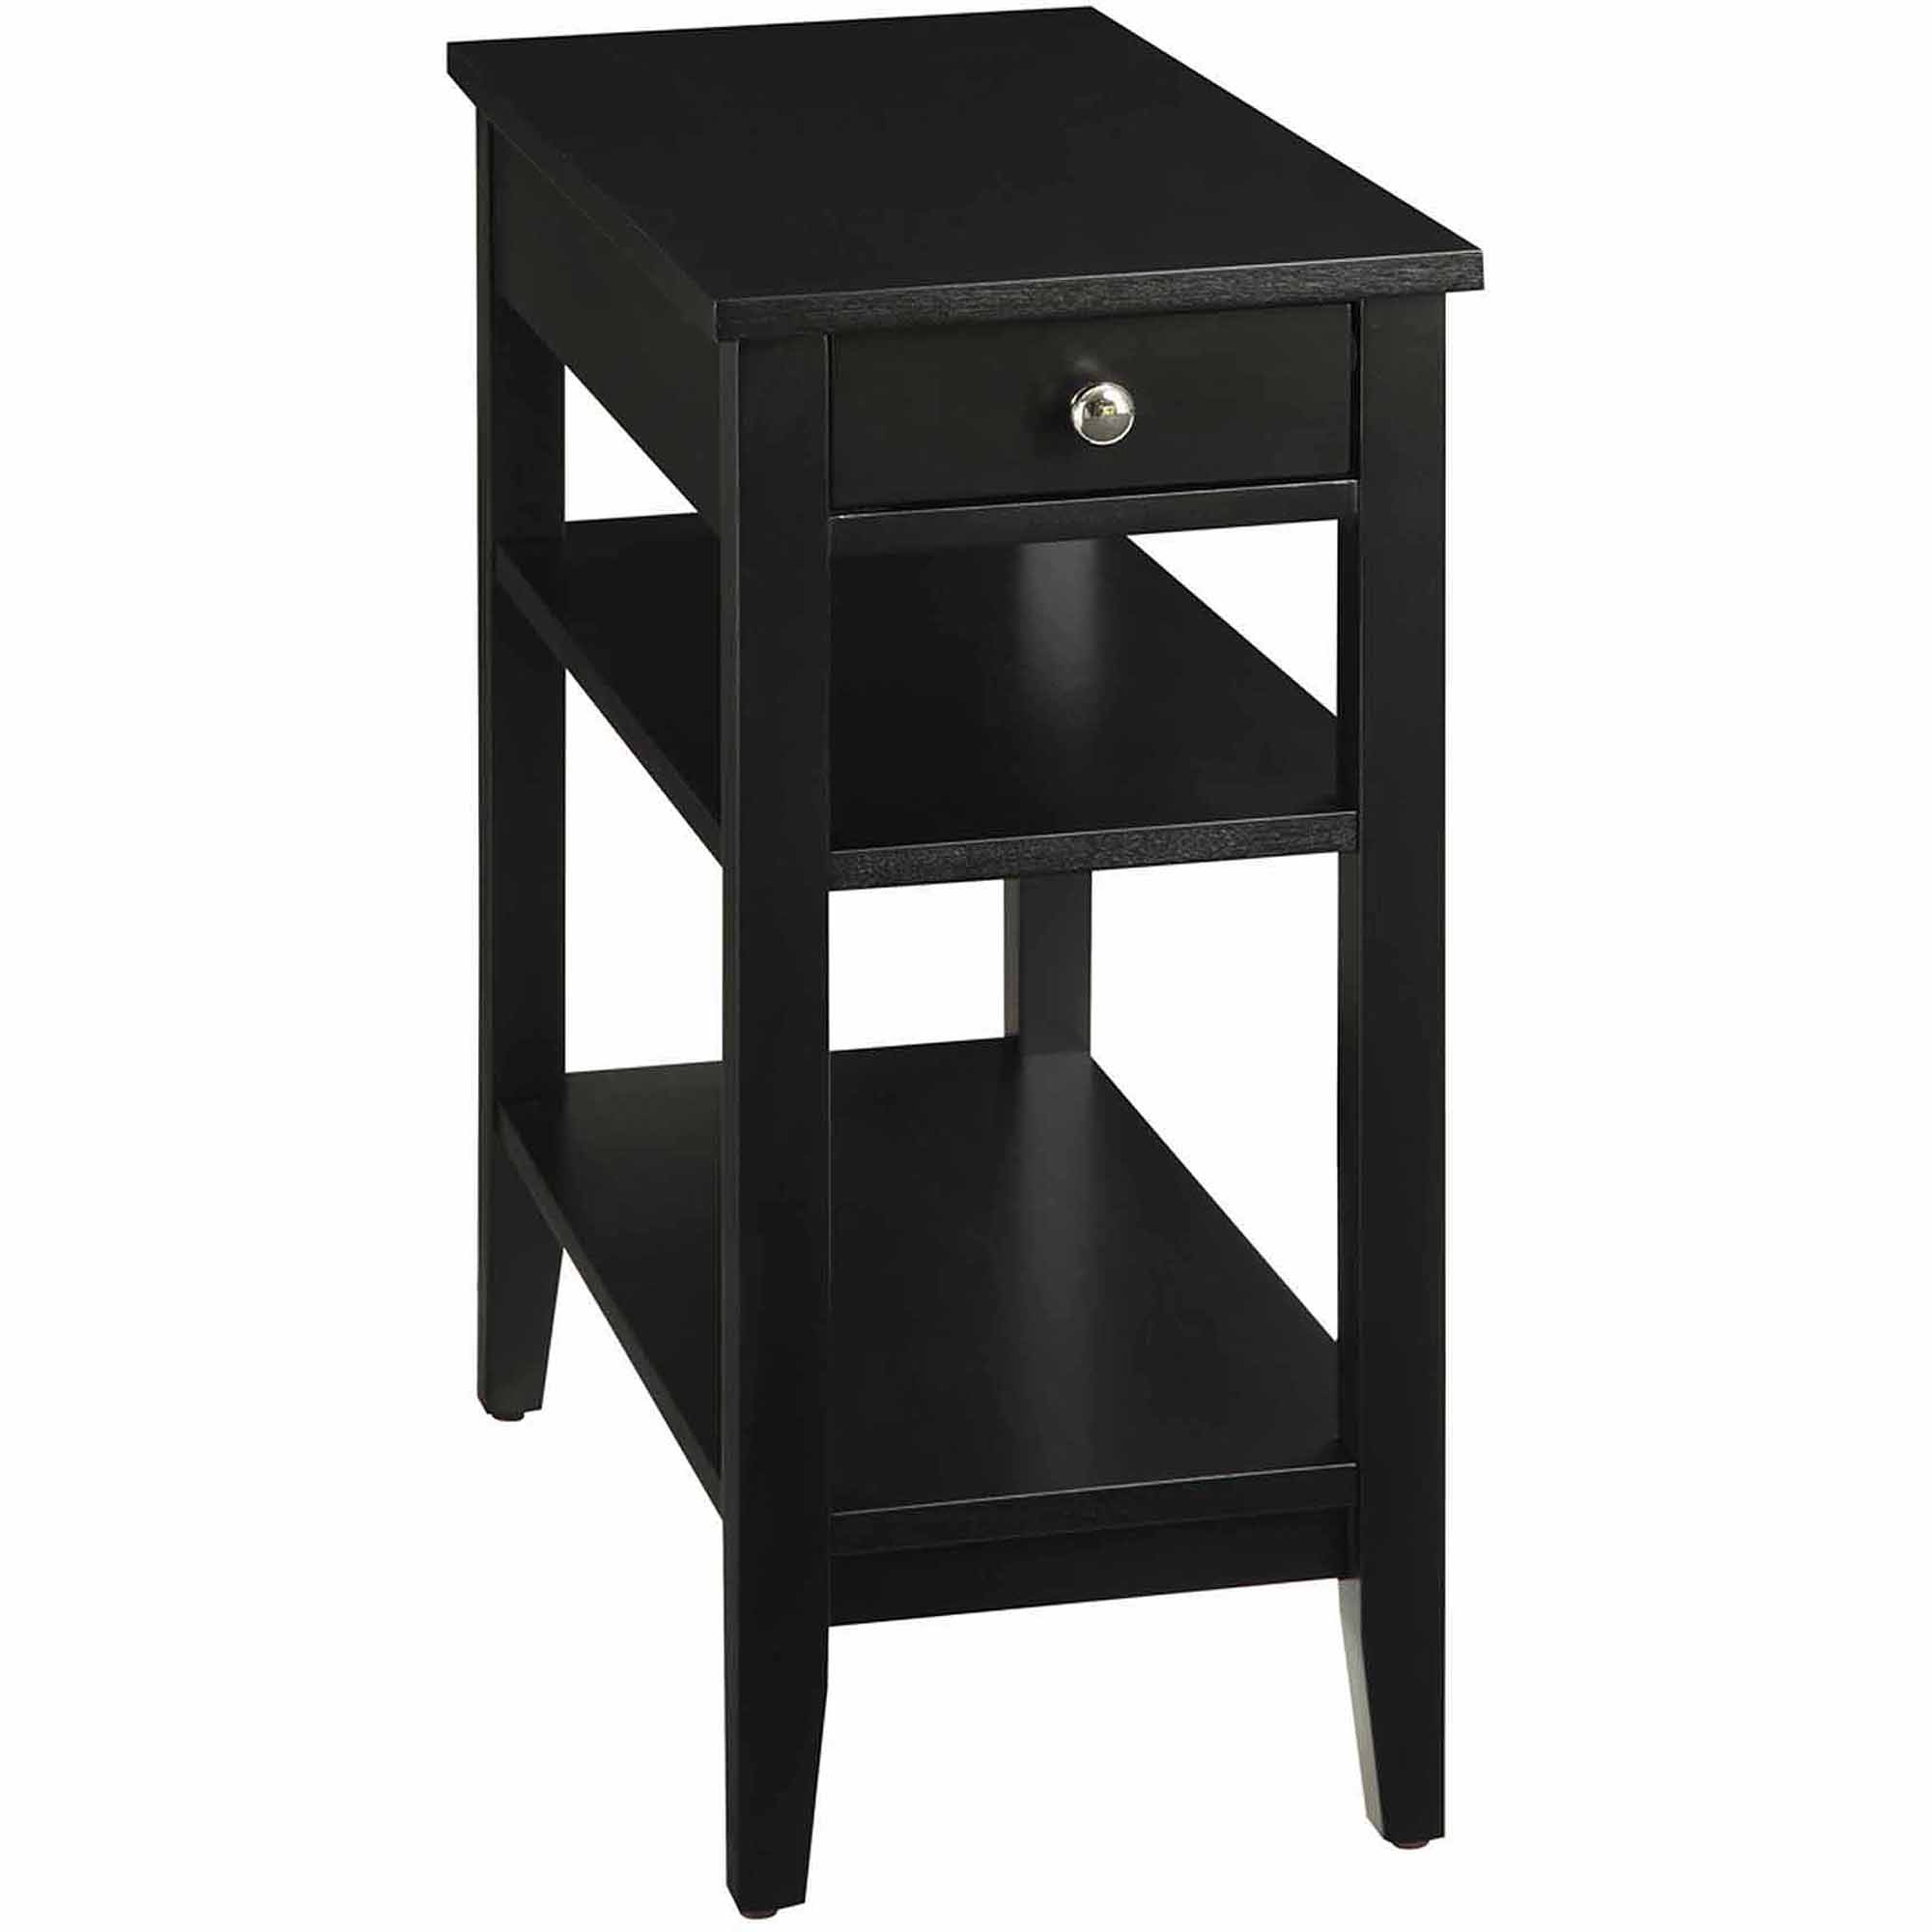 accent tables with drawers tall end table storage best elegant black wood tier drawer for your living room design inch high linens white pallet craigslist mattress bedside lights